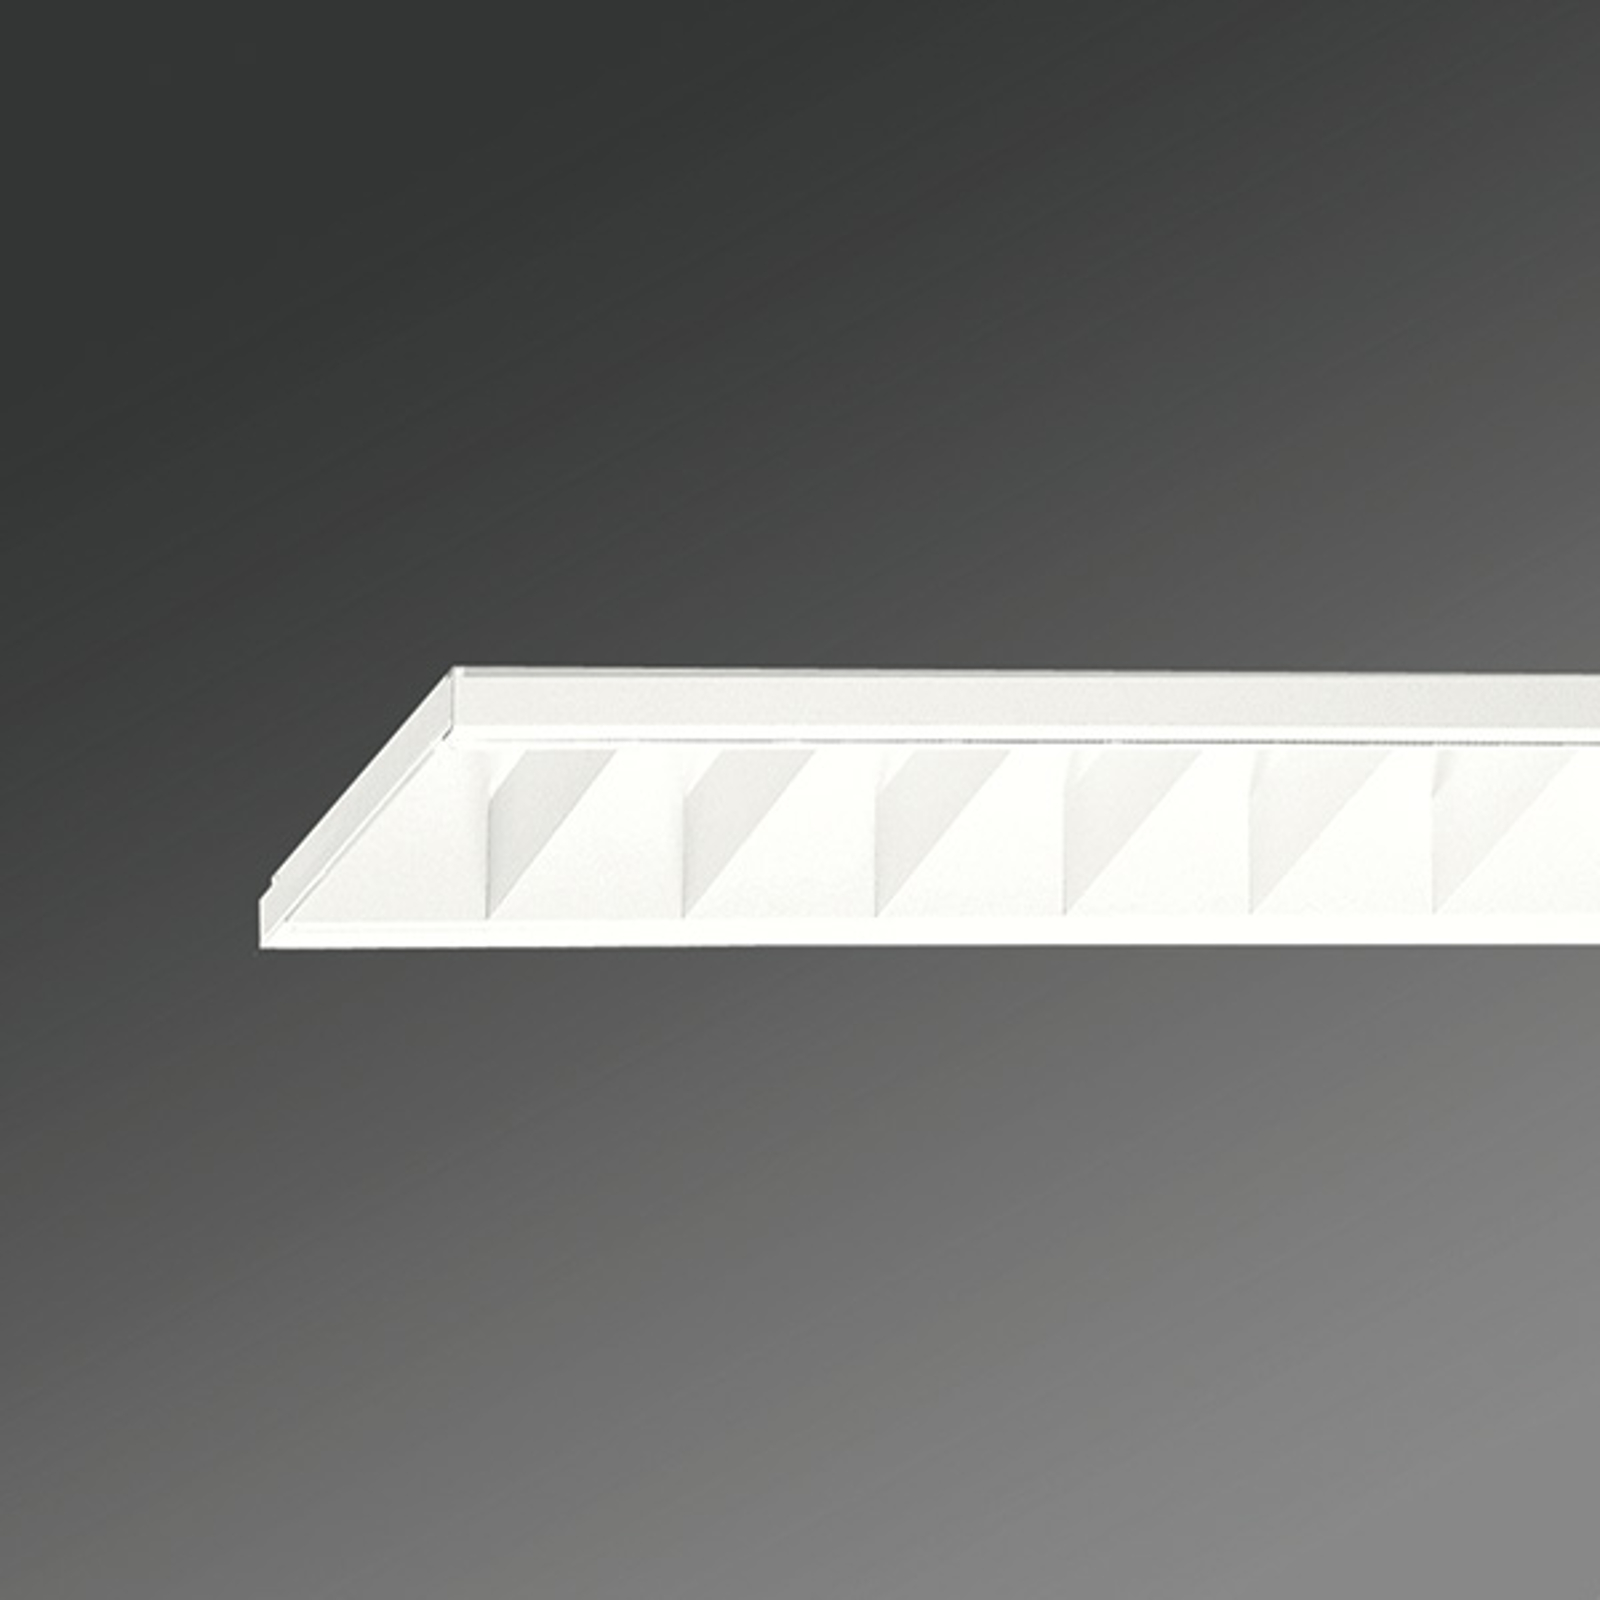 RMEP ceiling light with louvre, 58 W_8035074_1